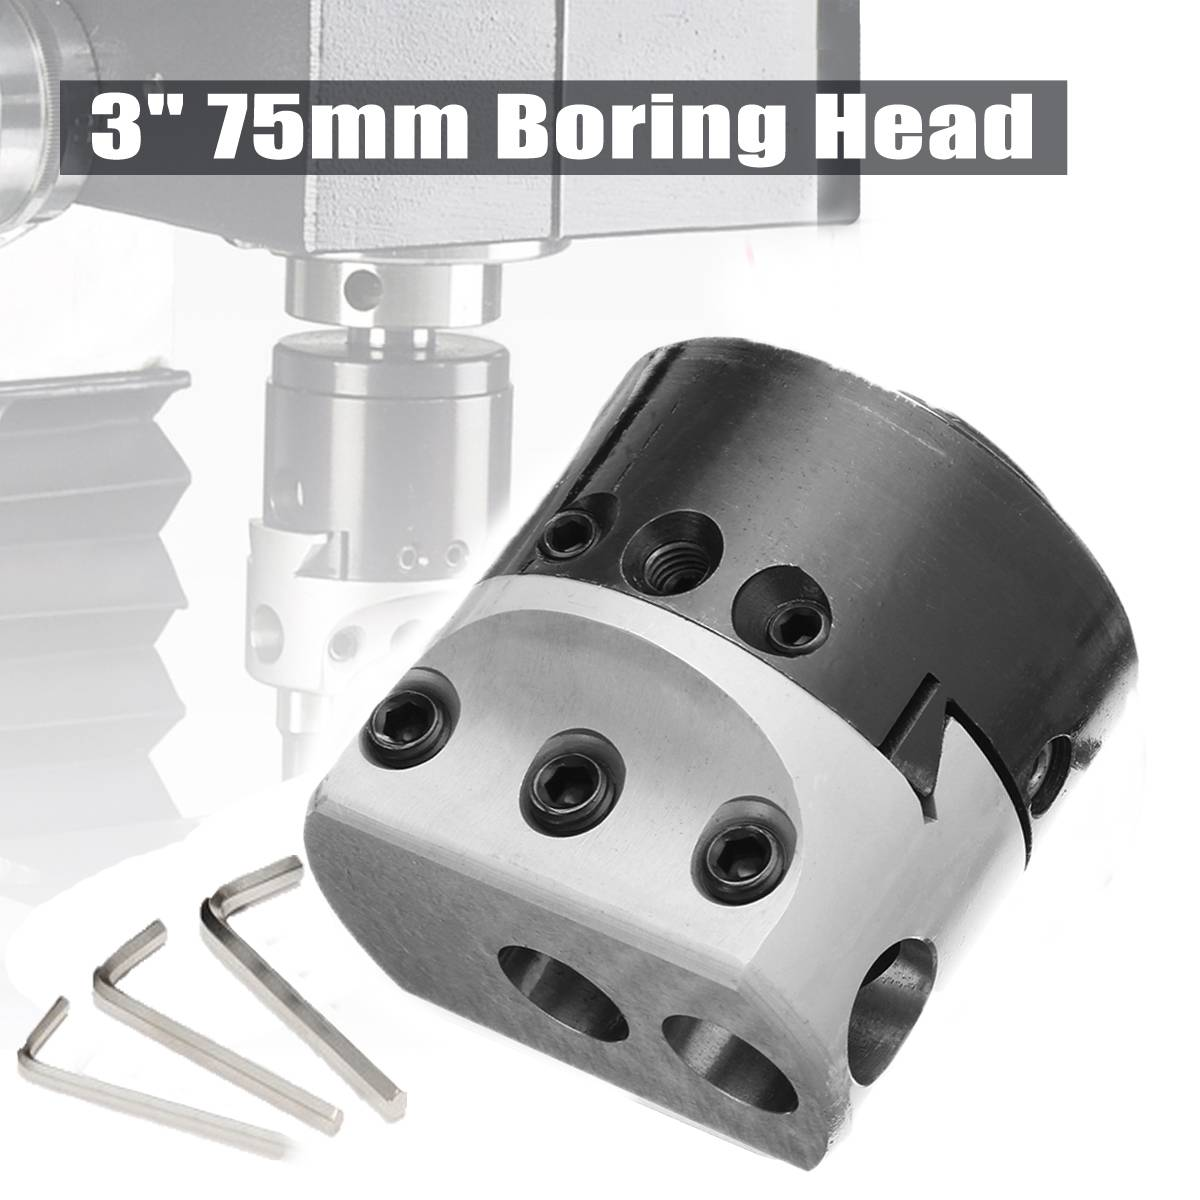 High Quality 3 75mm Boring Head Milling Tool with 3pcs Wrench For 18mm Hole Boring CutterHigh Quality 3 75mm Boring Head Milling Tool with 3pcs Wrench For 18mm Hole Boring Cutter